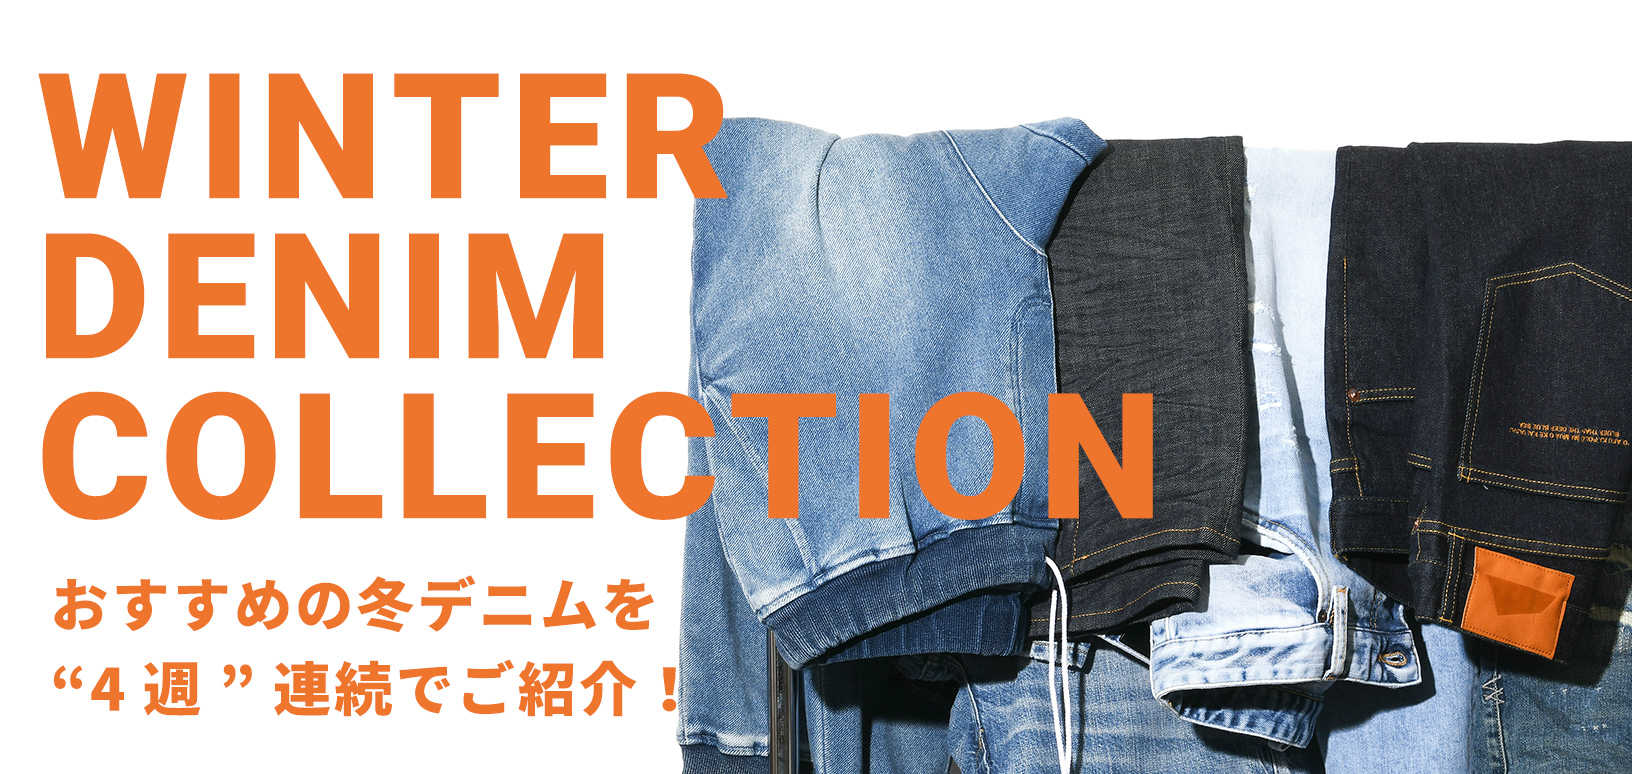 WINTER DENIM COLLECTION